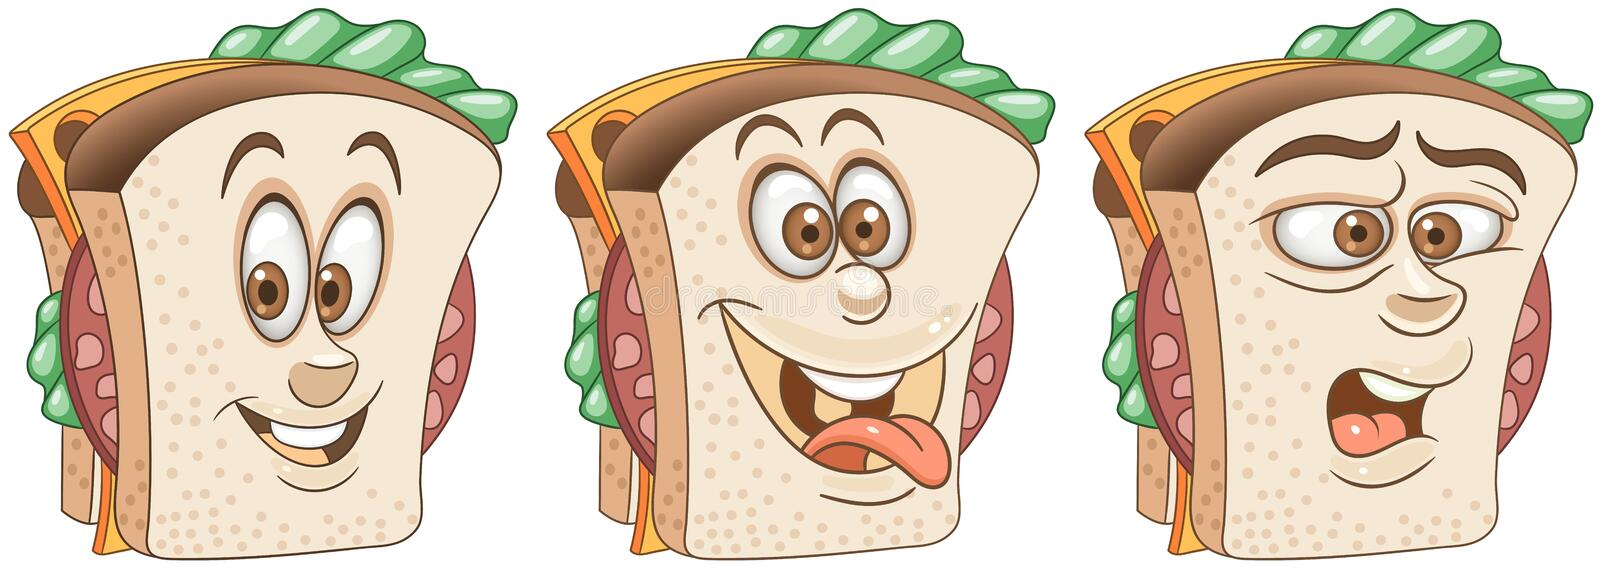 Sandwich. Snack Food concept royalty free stock photos